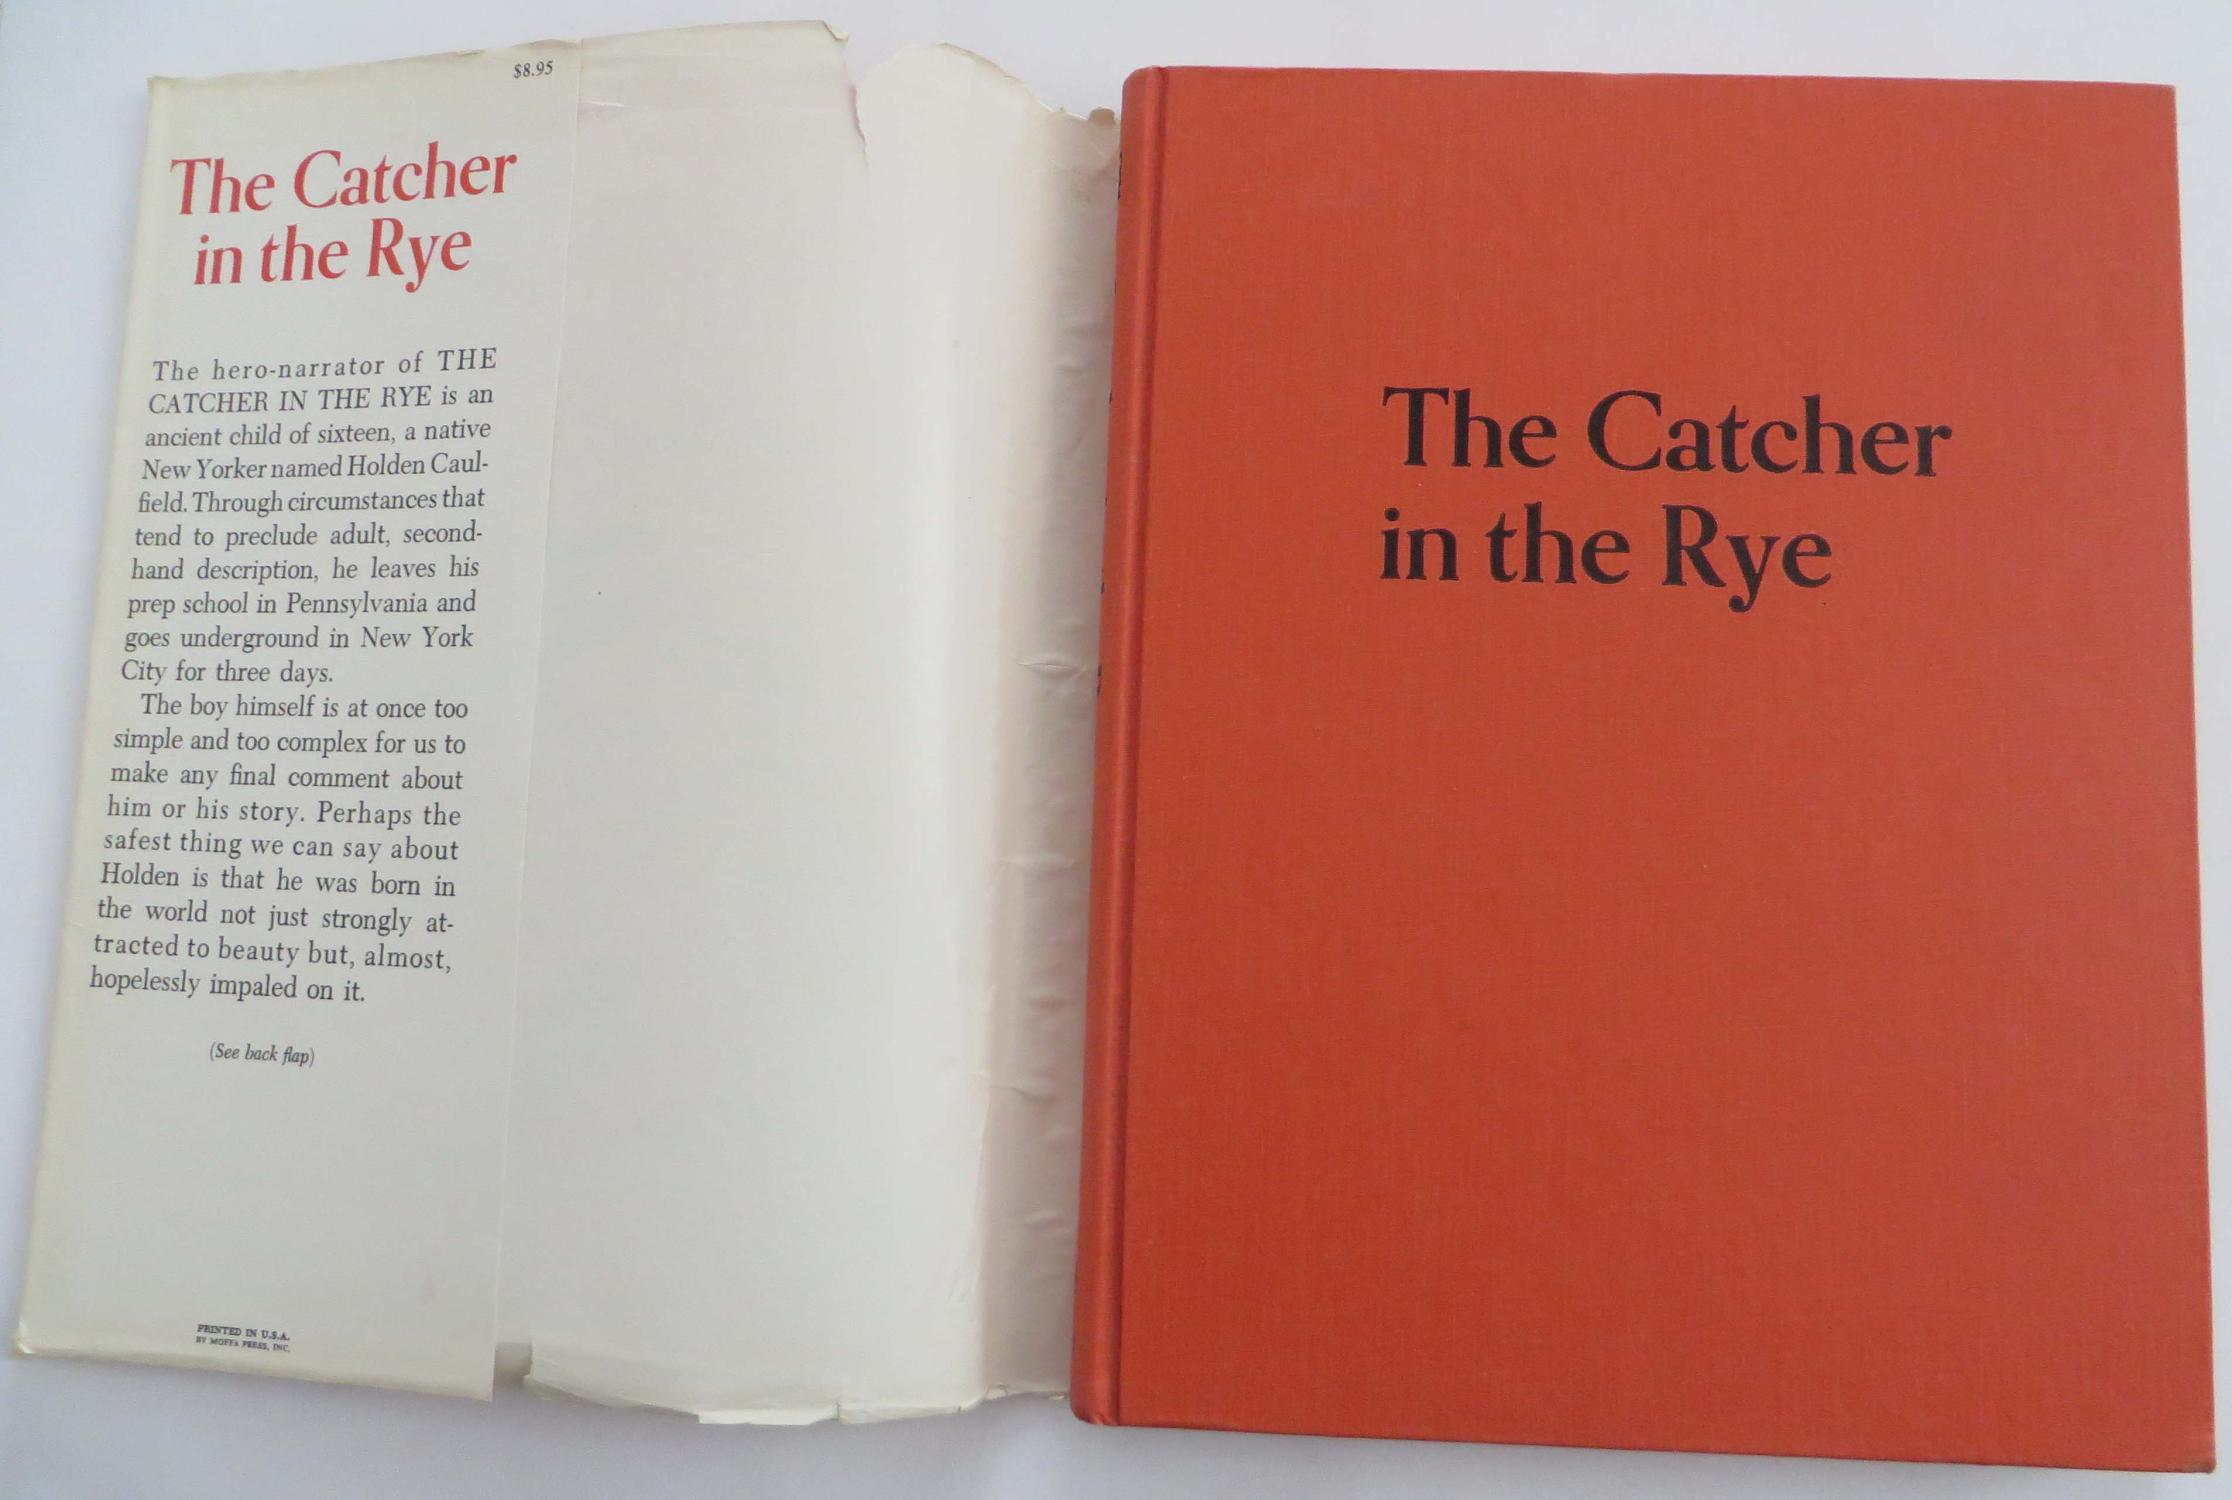 an analysis of the worth of a book the catcher in the rye by j d salinger I read this book for the first time as an adult someone recommended i read it  after i told her i hated school when i first read this book except for a couple of his .